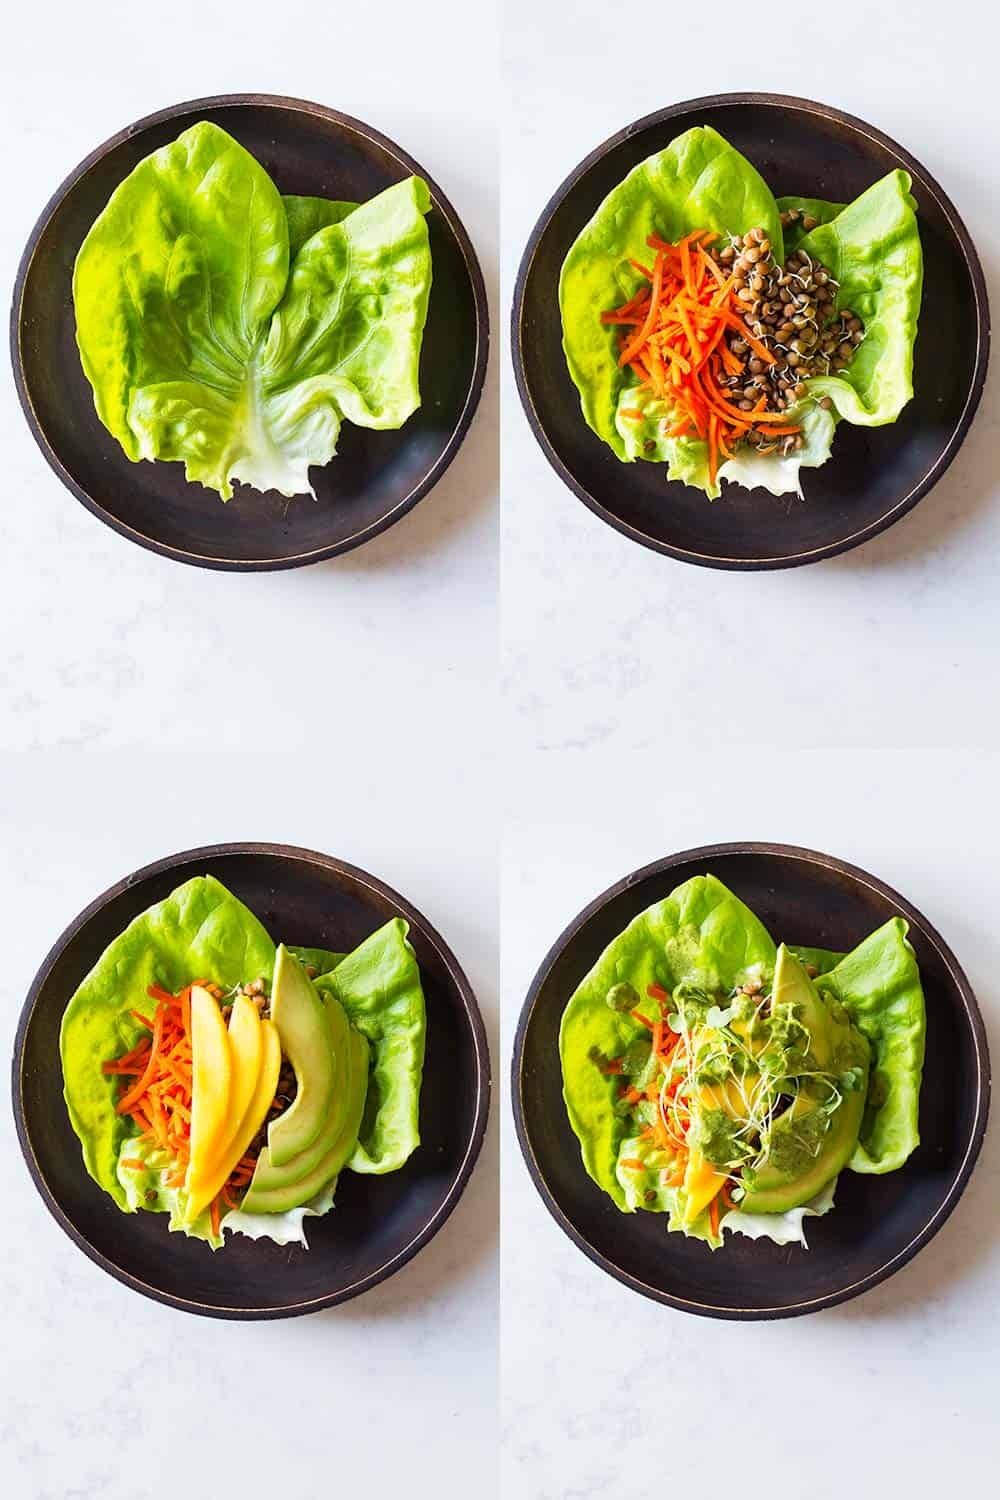 Step-by-step how-to instructions to build a vegan lettuce wrap.